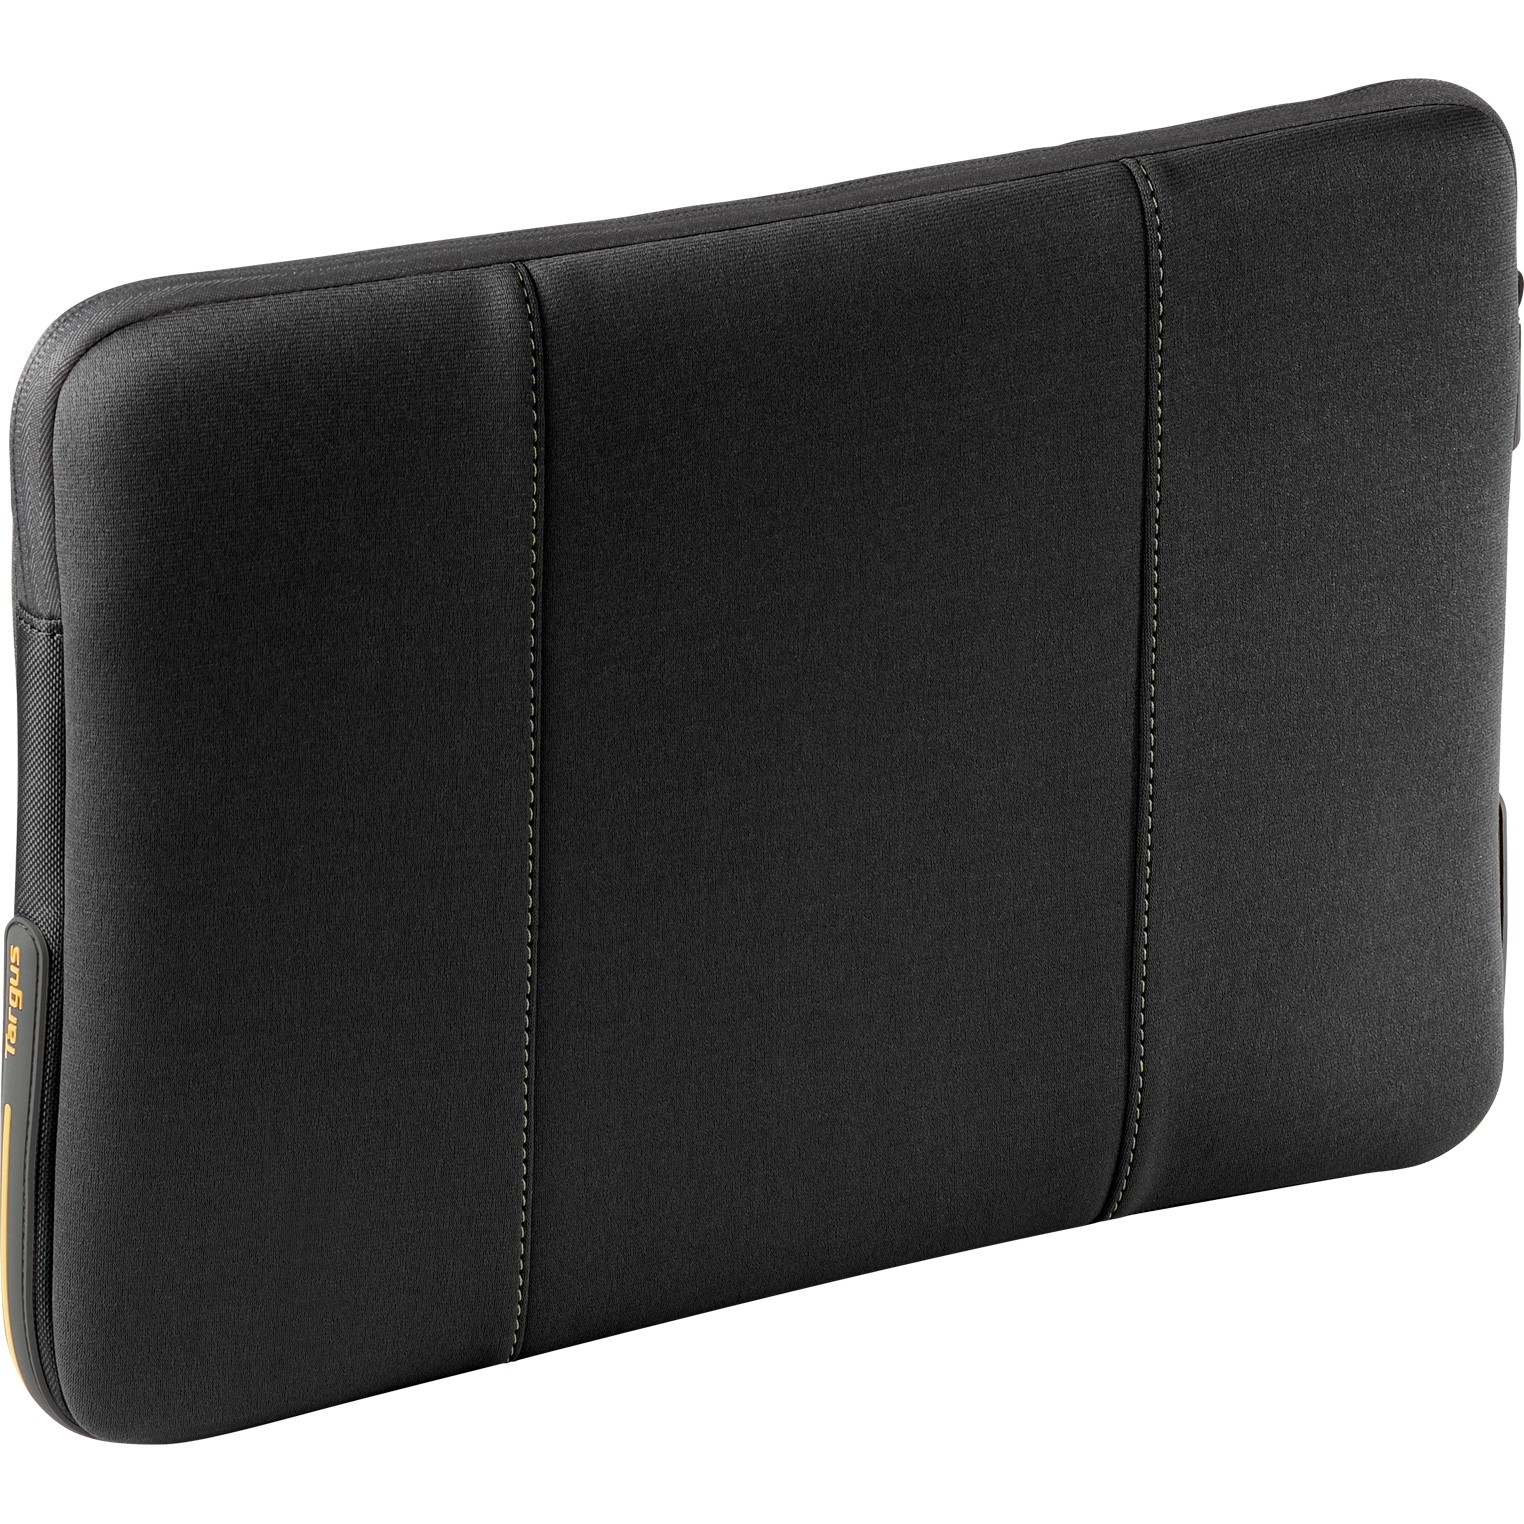 Targus 16in Impax Laptop Case - Black